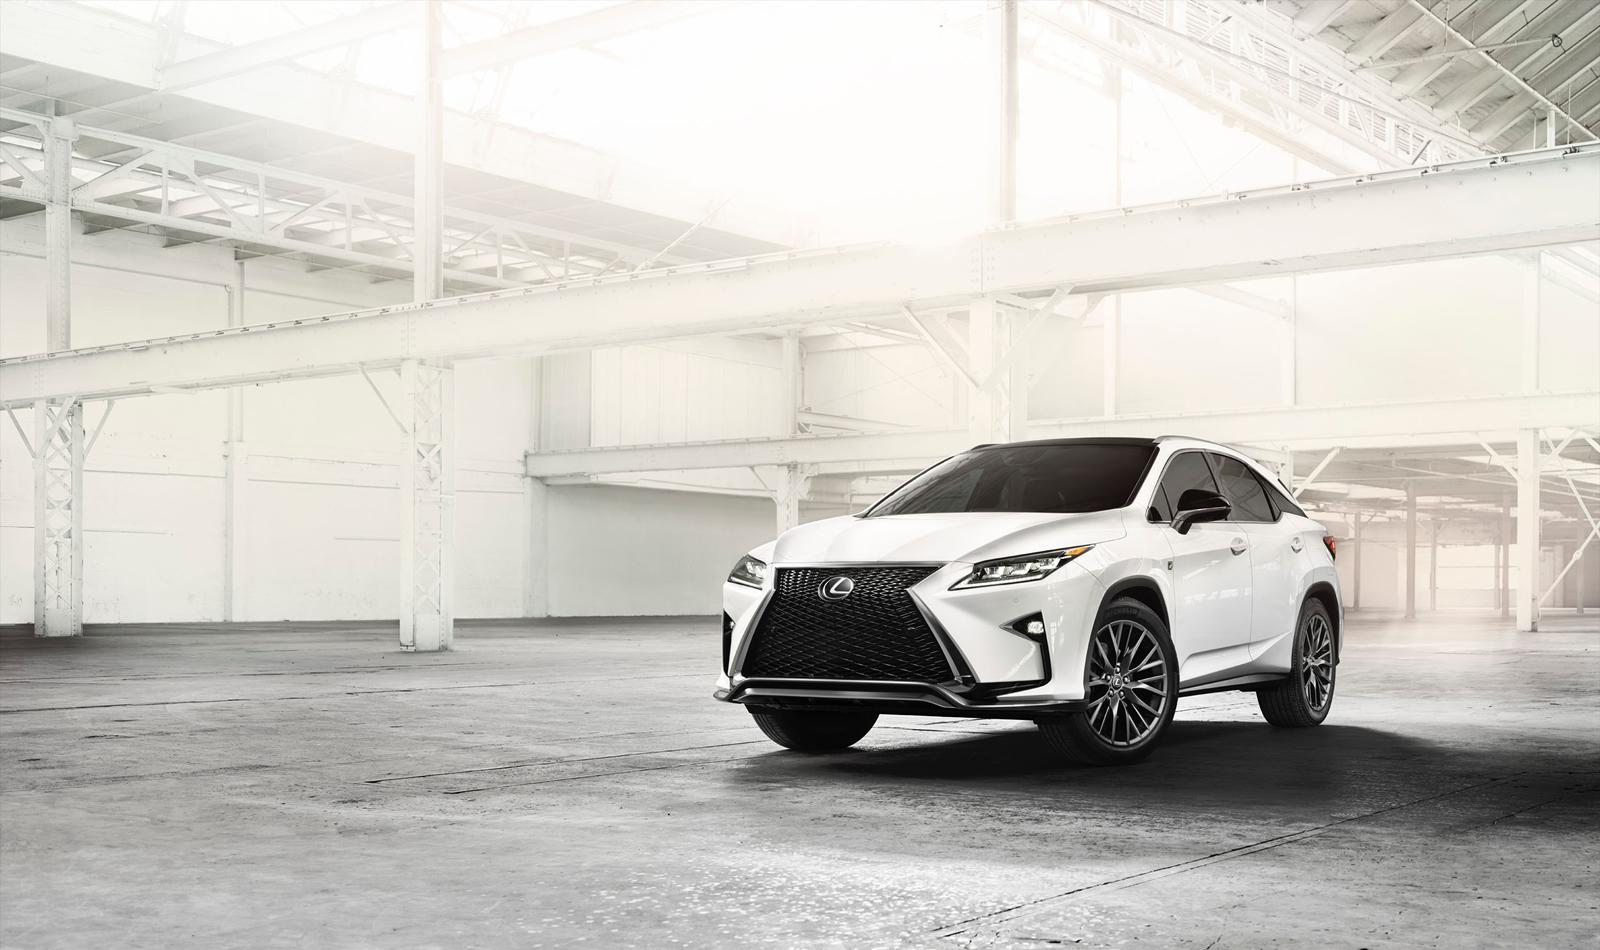 redesigned 2016 lexus rx released - youwheel - car news and review